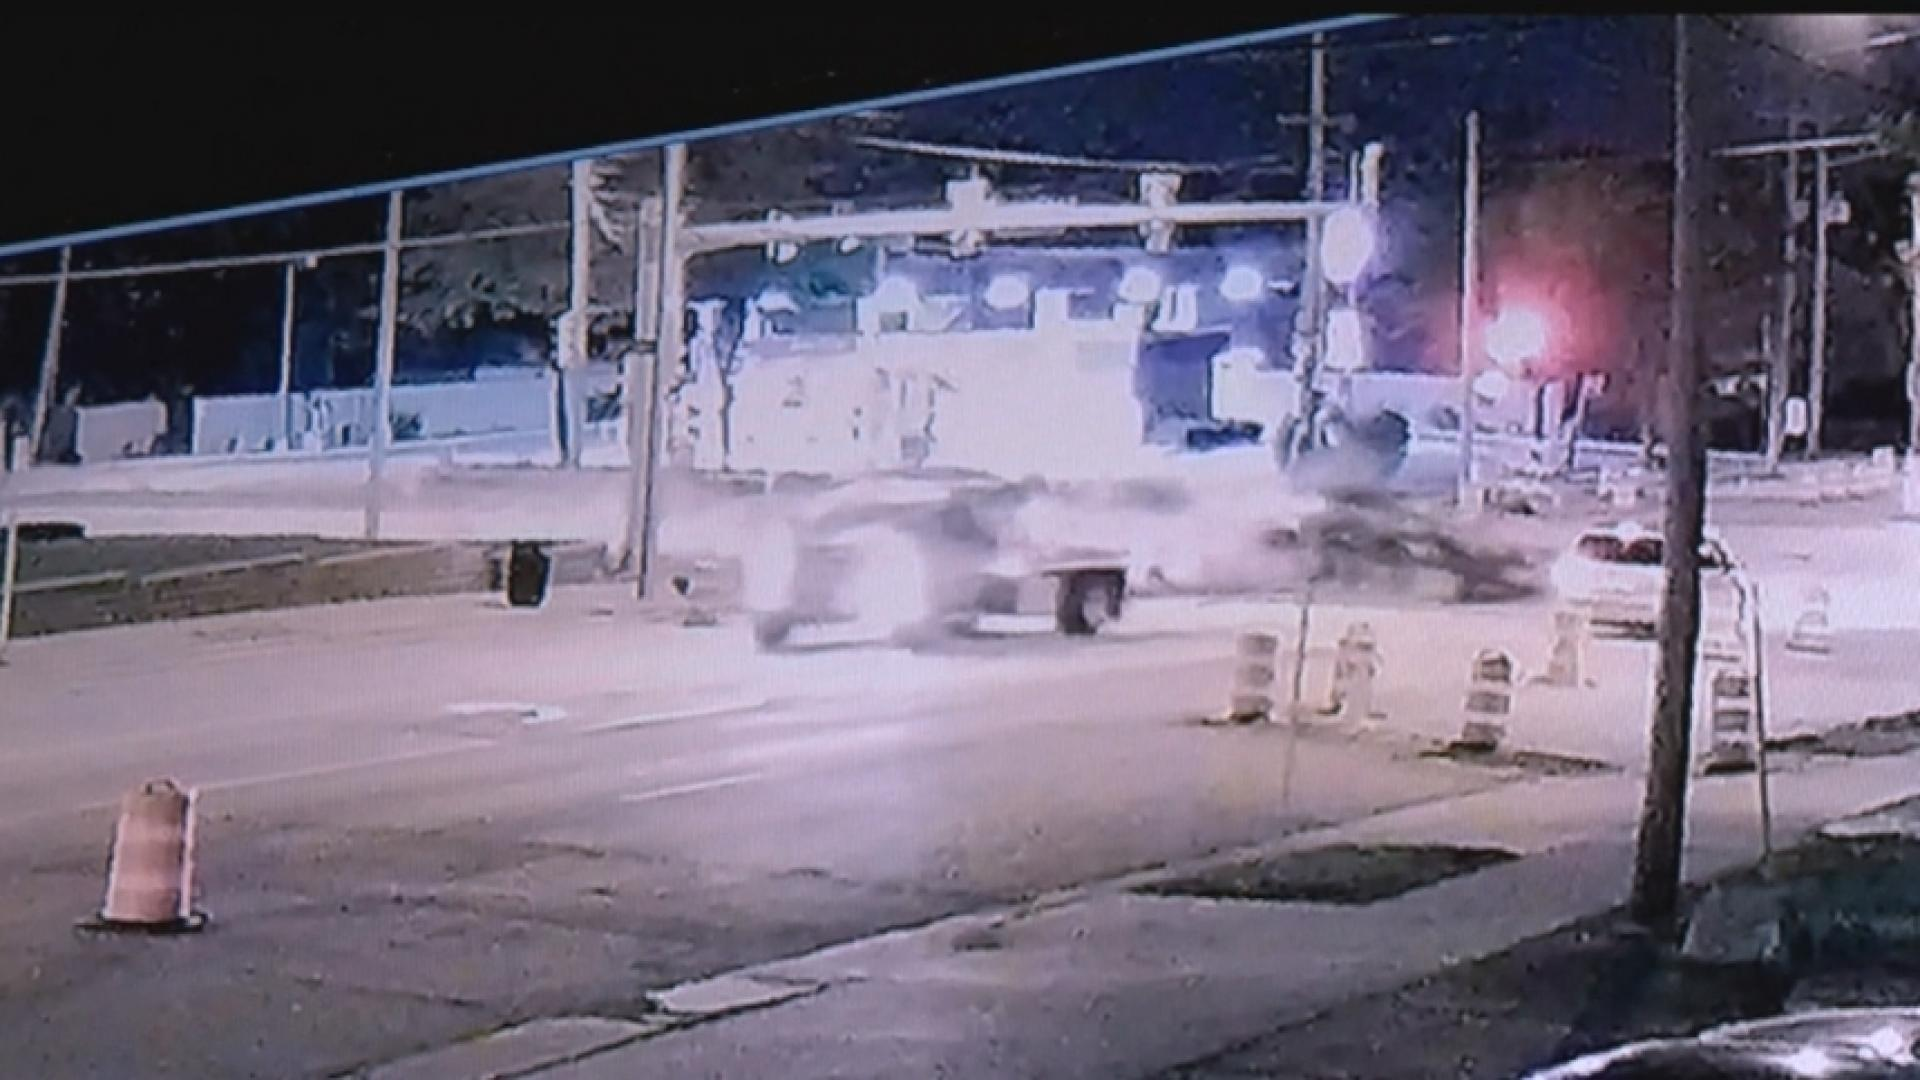 VIDEO: High-speed chase ends in violent crash | ArkLaTexHomepage